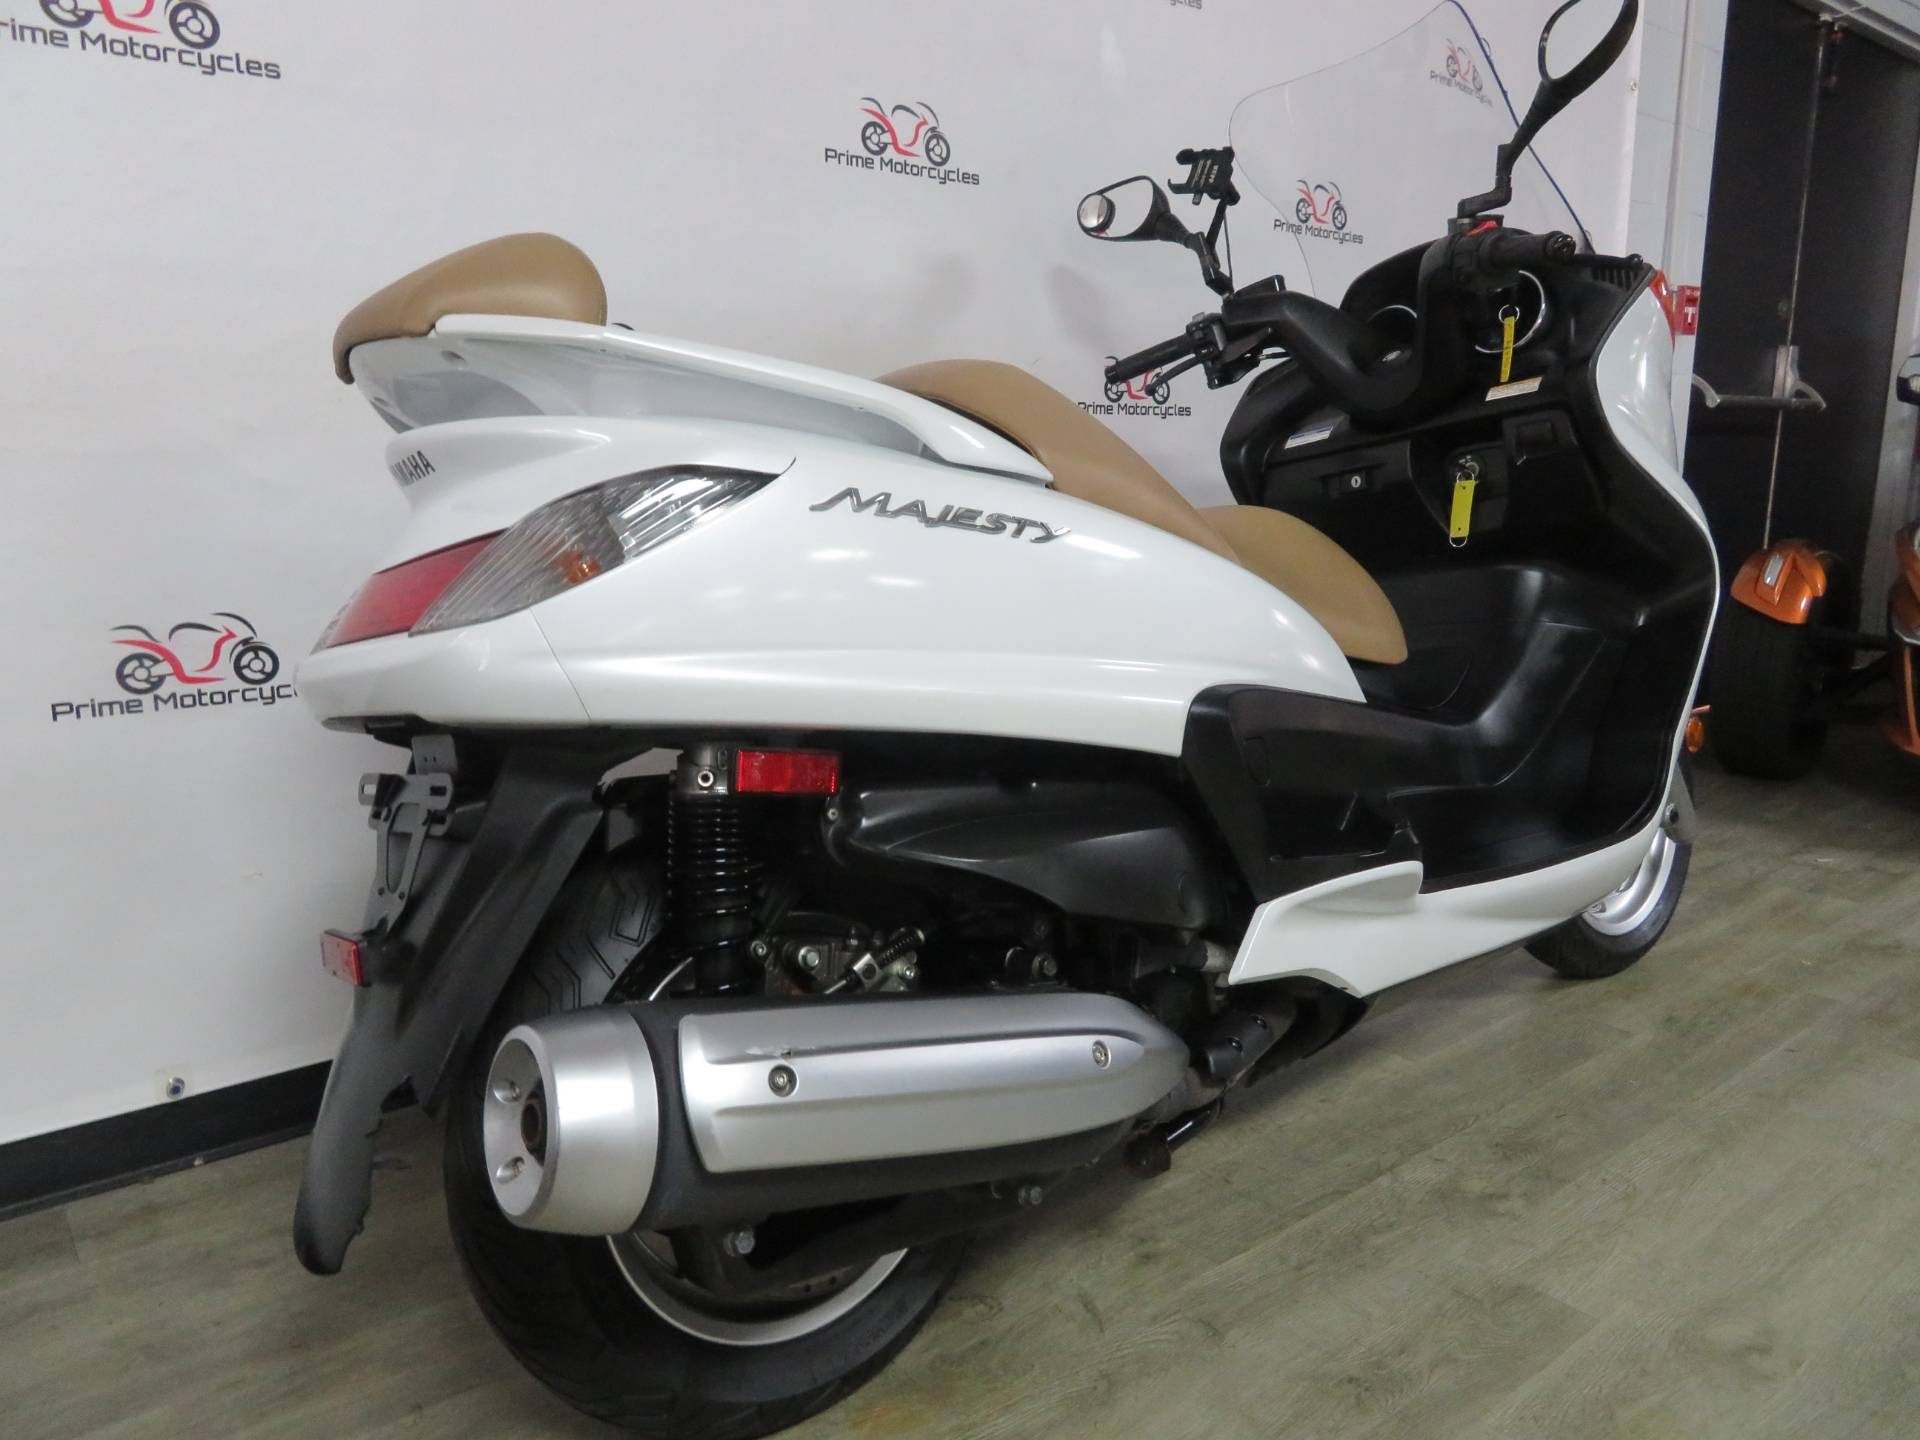 2010 Yamaha Majesty in Sanford, Florida - Photo 8